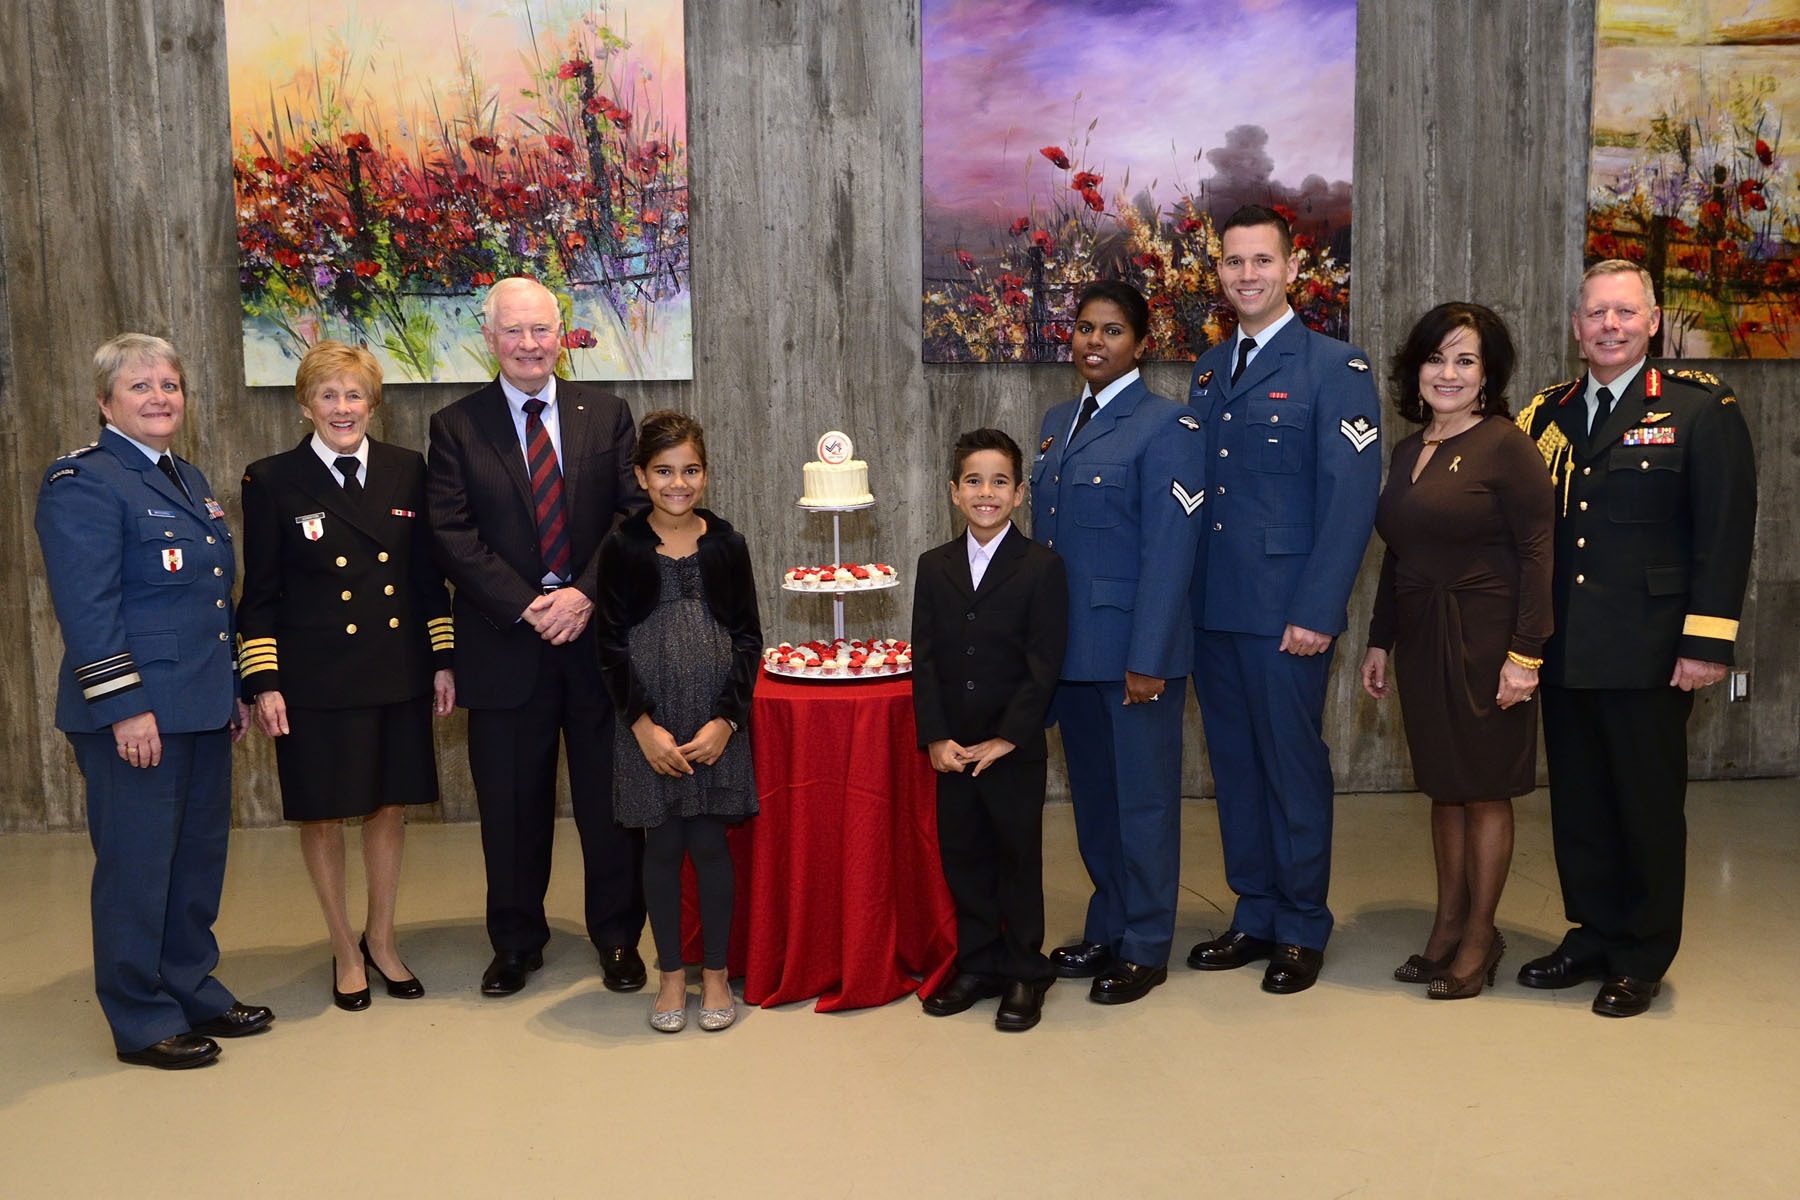 Her Excellency Sharon Johnston attended an evening in honour of the 25th anniversary of the Military Family Services Program. She was joined by her husband, His Excellency the Right Honourable David Johnston, Governor General and Commander-in-Chief of Canada. The event was held at the Canadian War Museum, in Ottawa, on October 24, 2016.